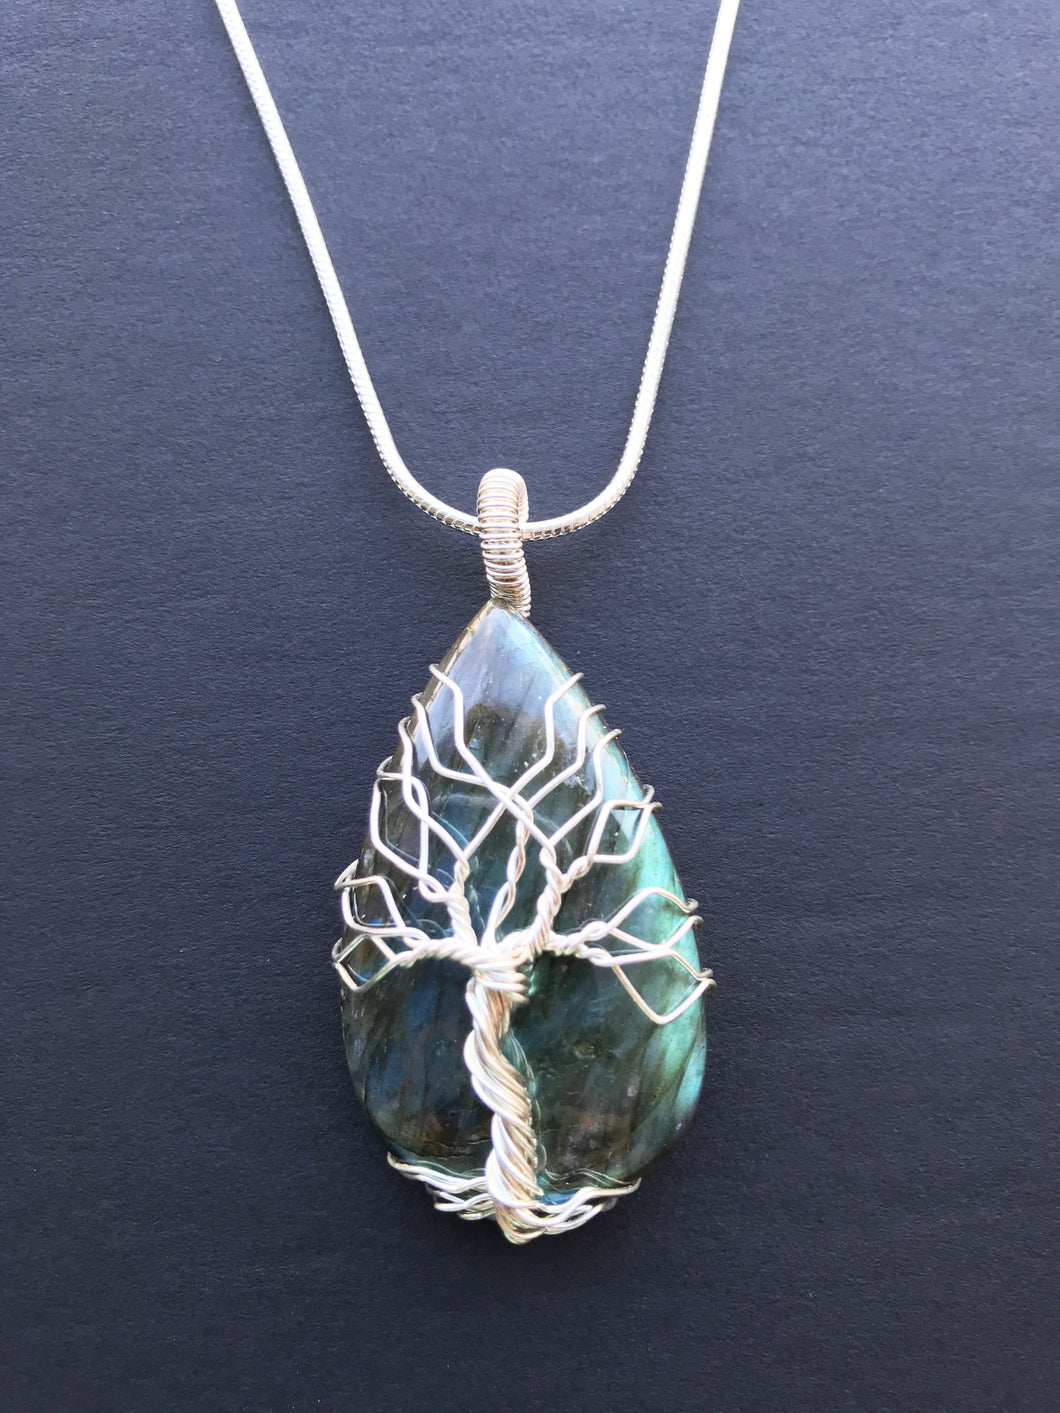 Tree Of Life Necklace - Labradorite, Sterling silver 0.6 oz